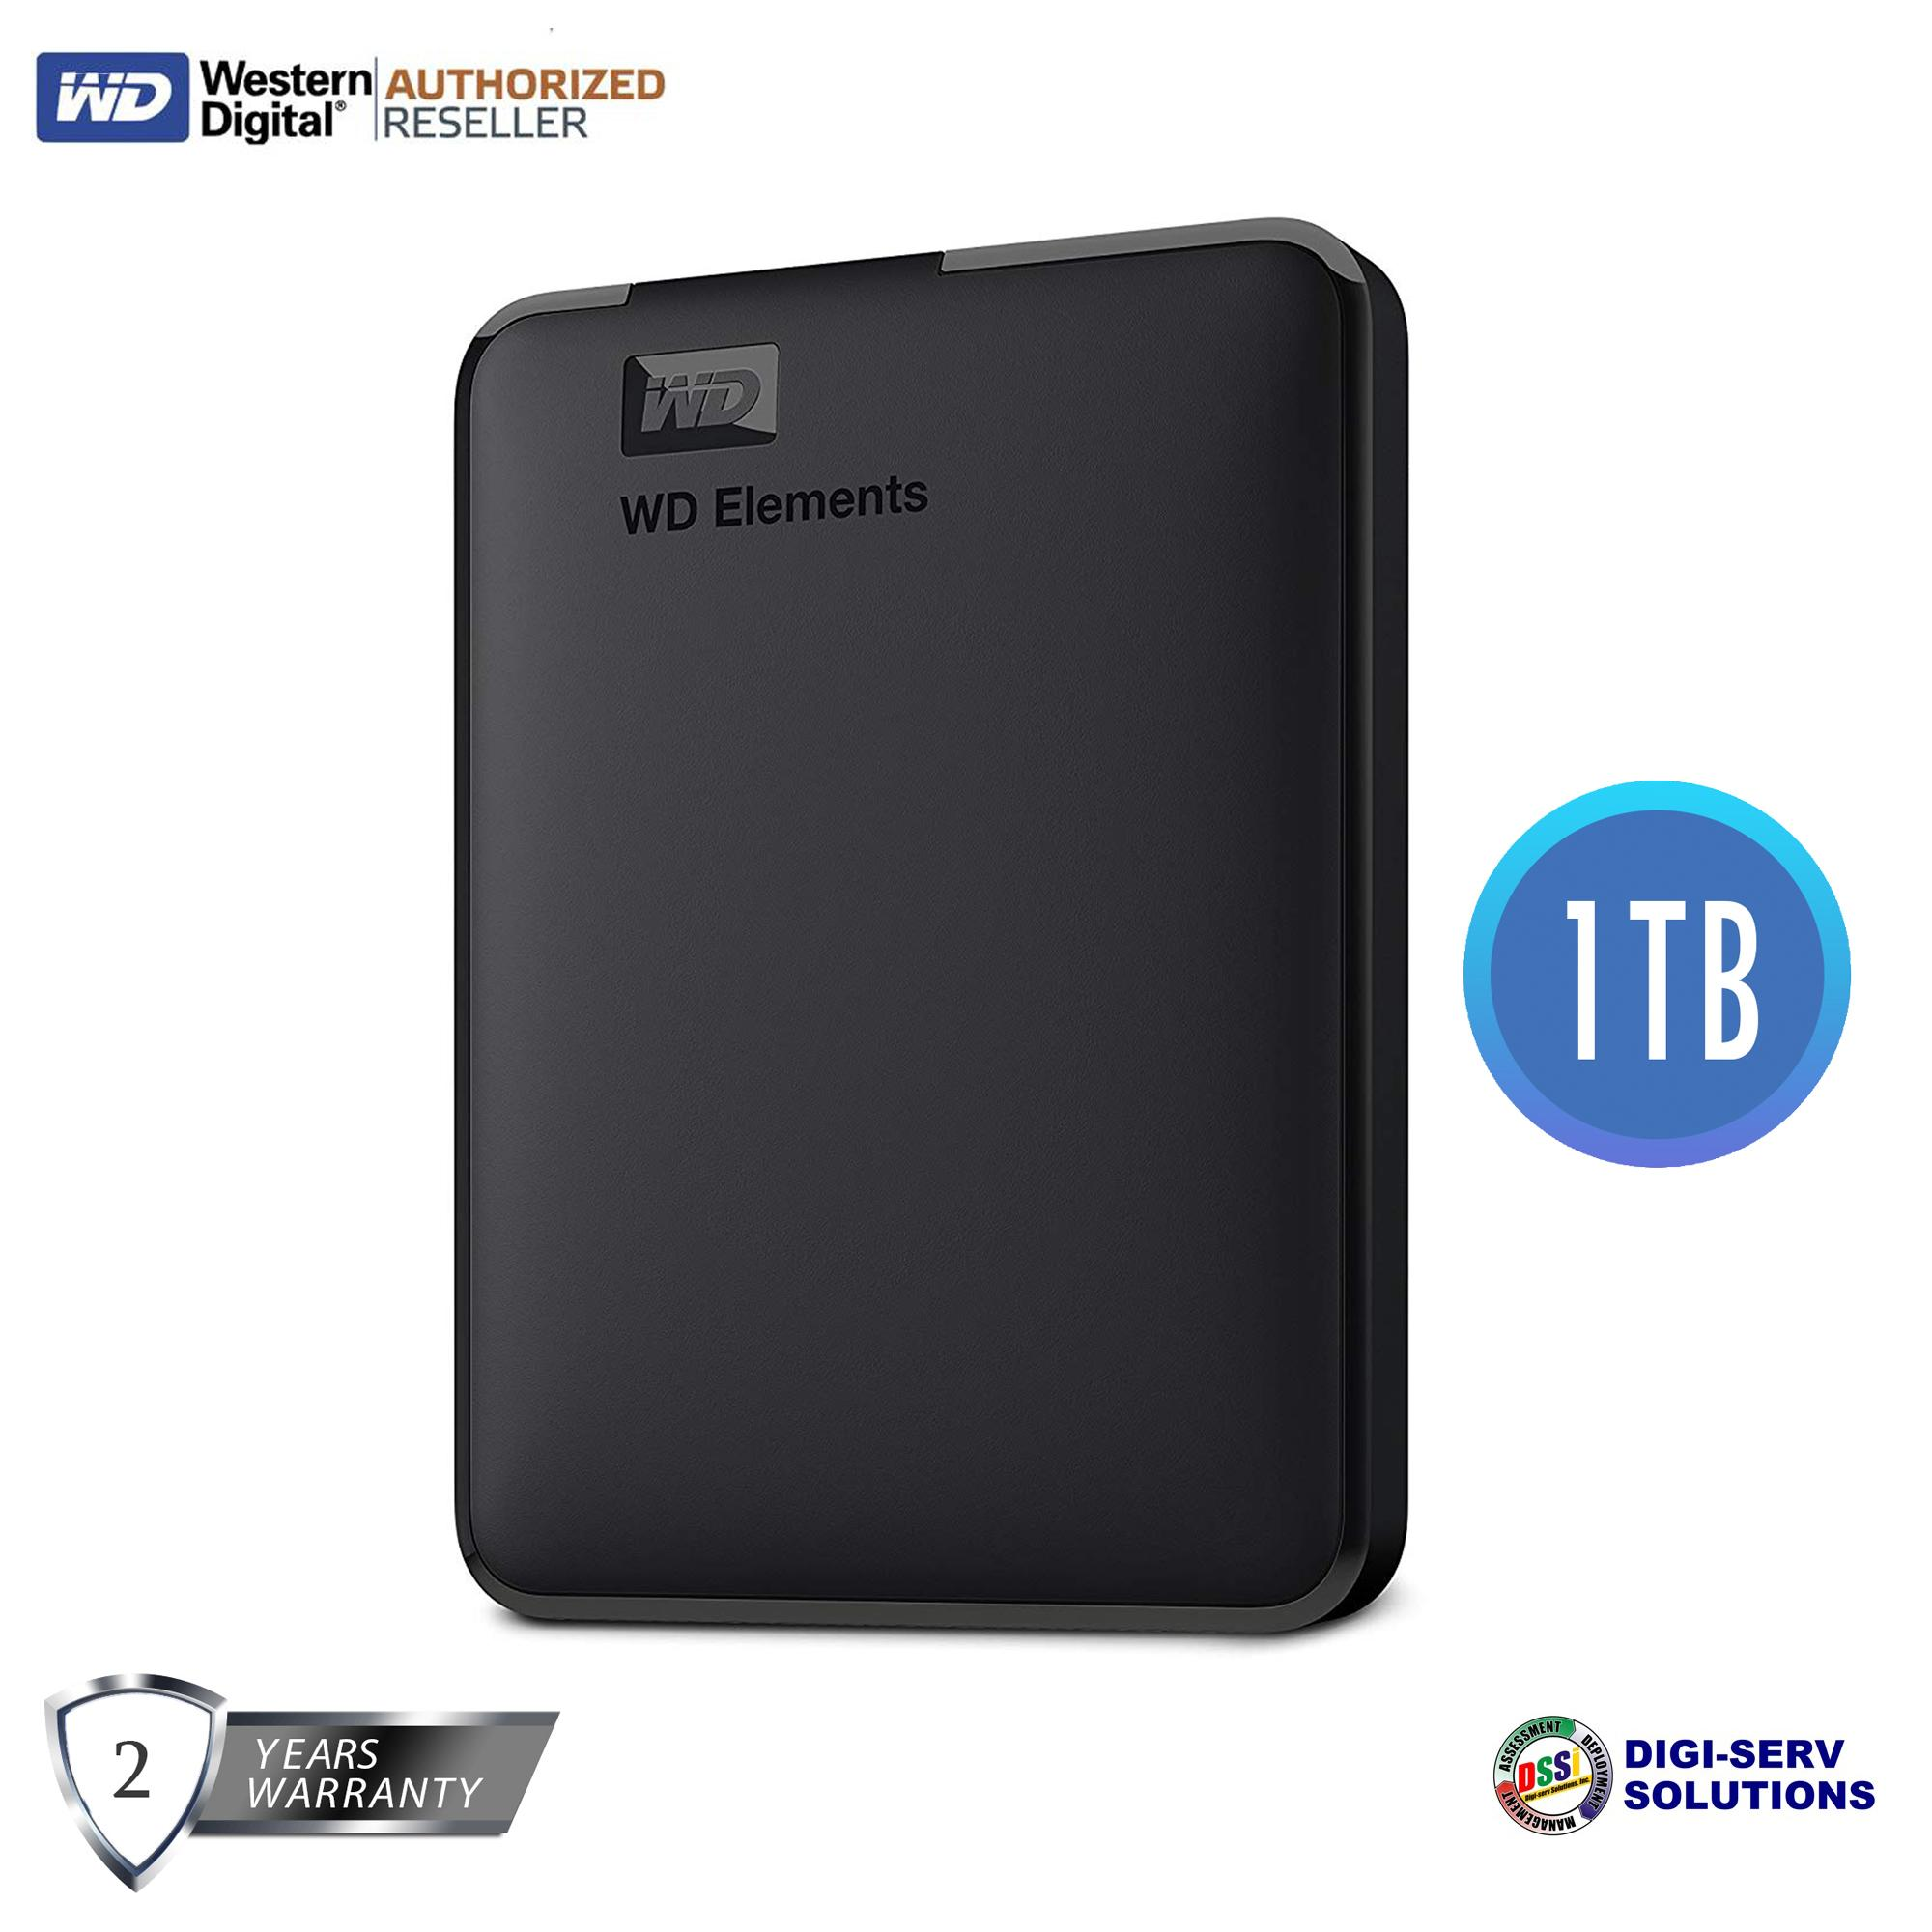 WD Elements 1TB (Black) USB 3 0 Portable Hard Drive Simple and Fast with 2  Years Warranty